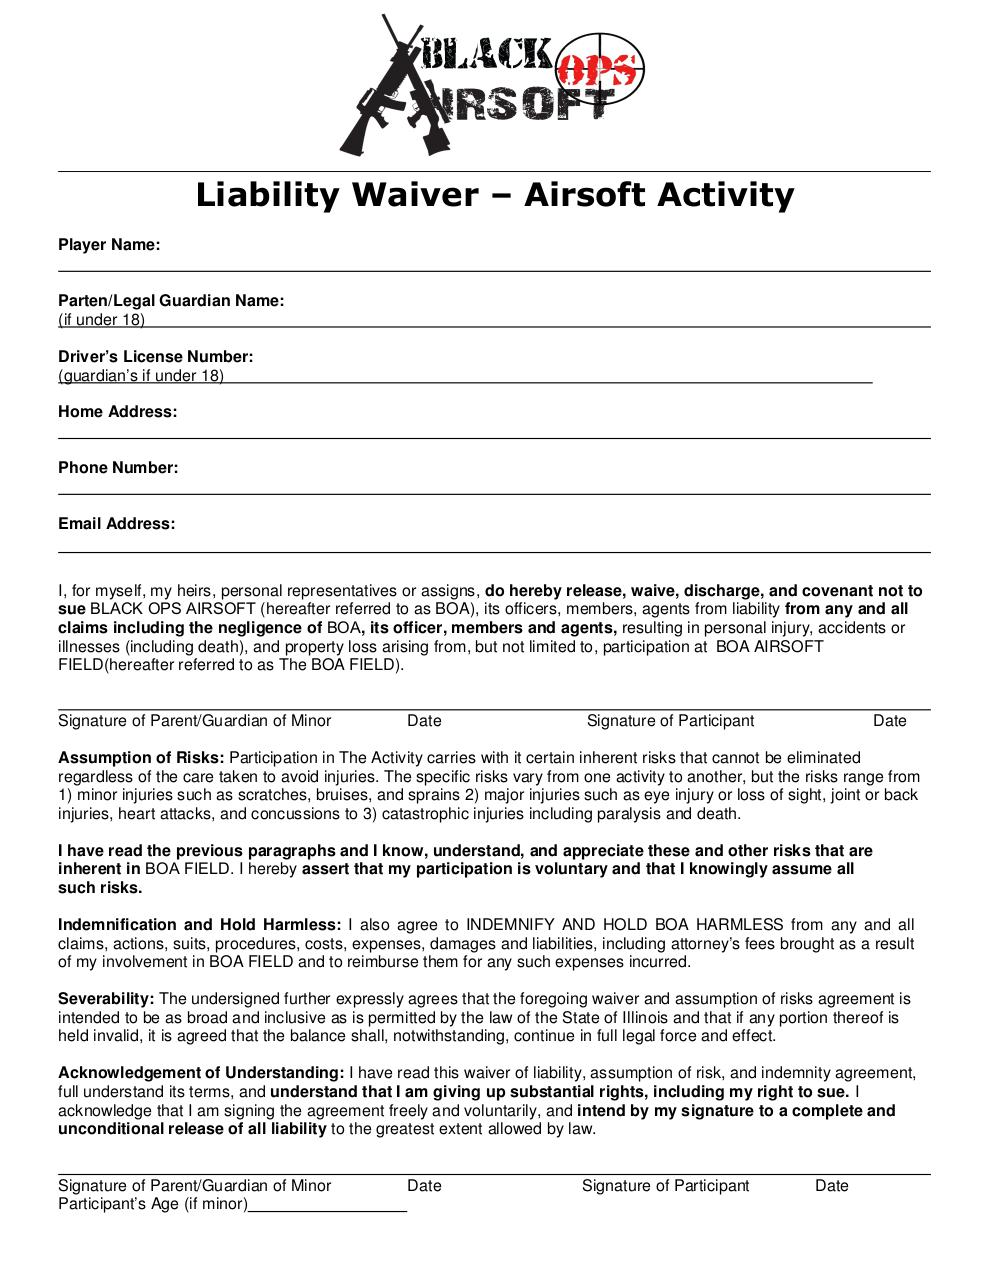 Waiver Of Liability printable sample liability release form - liability waiver form